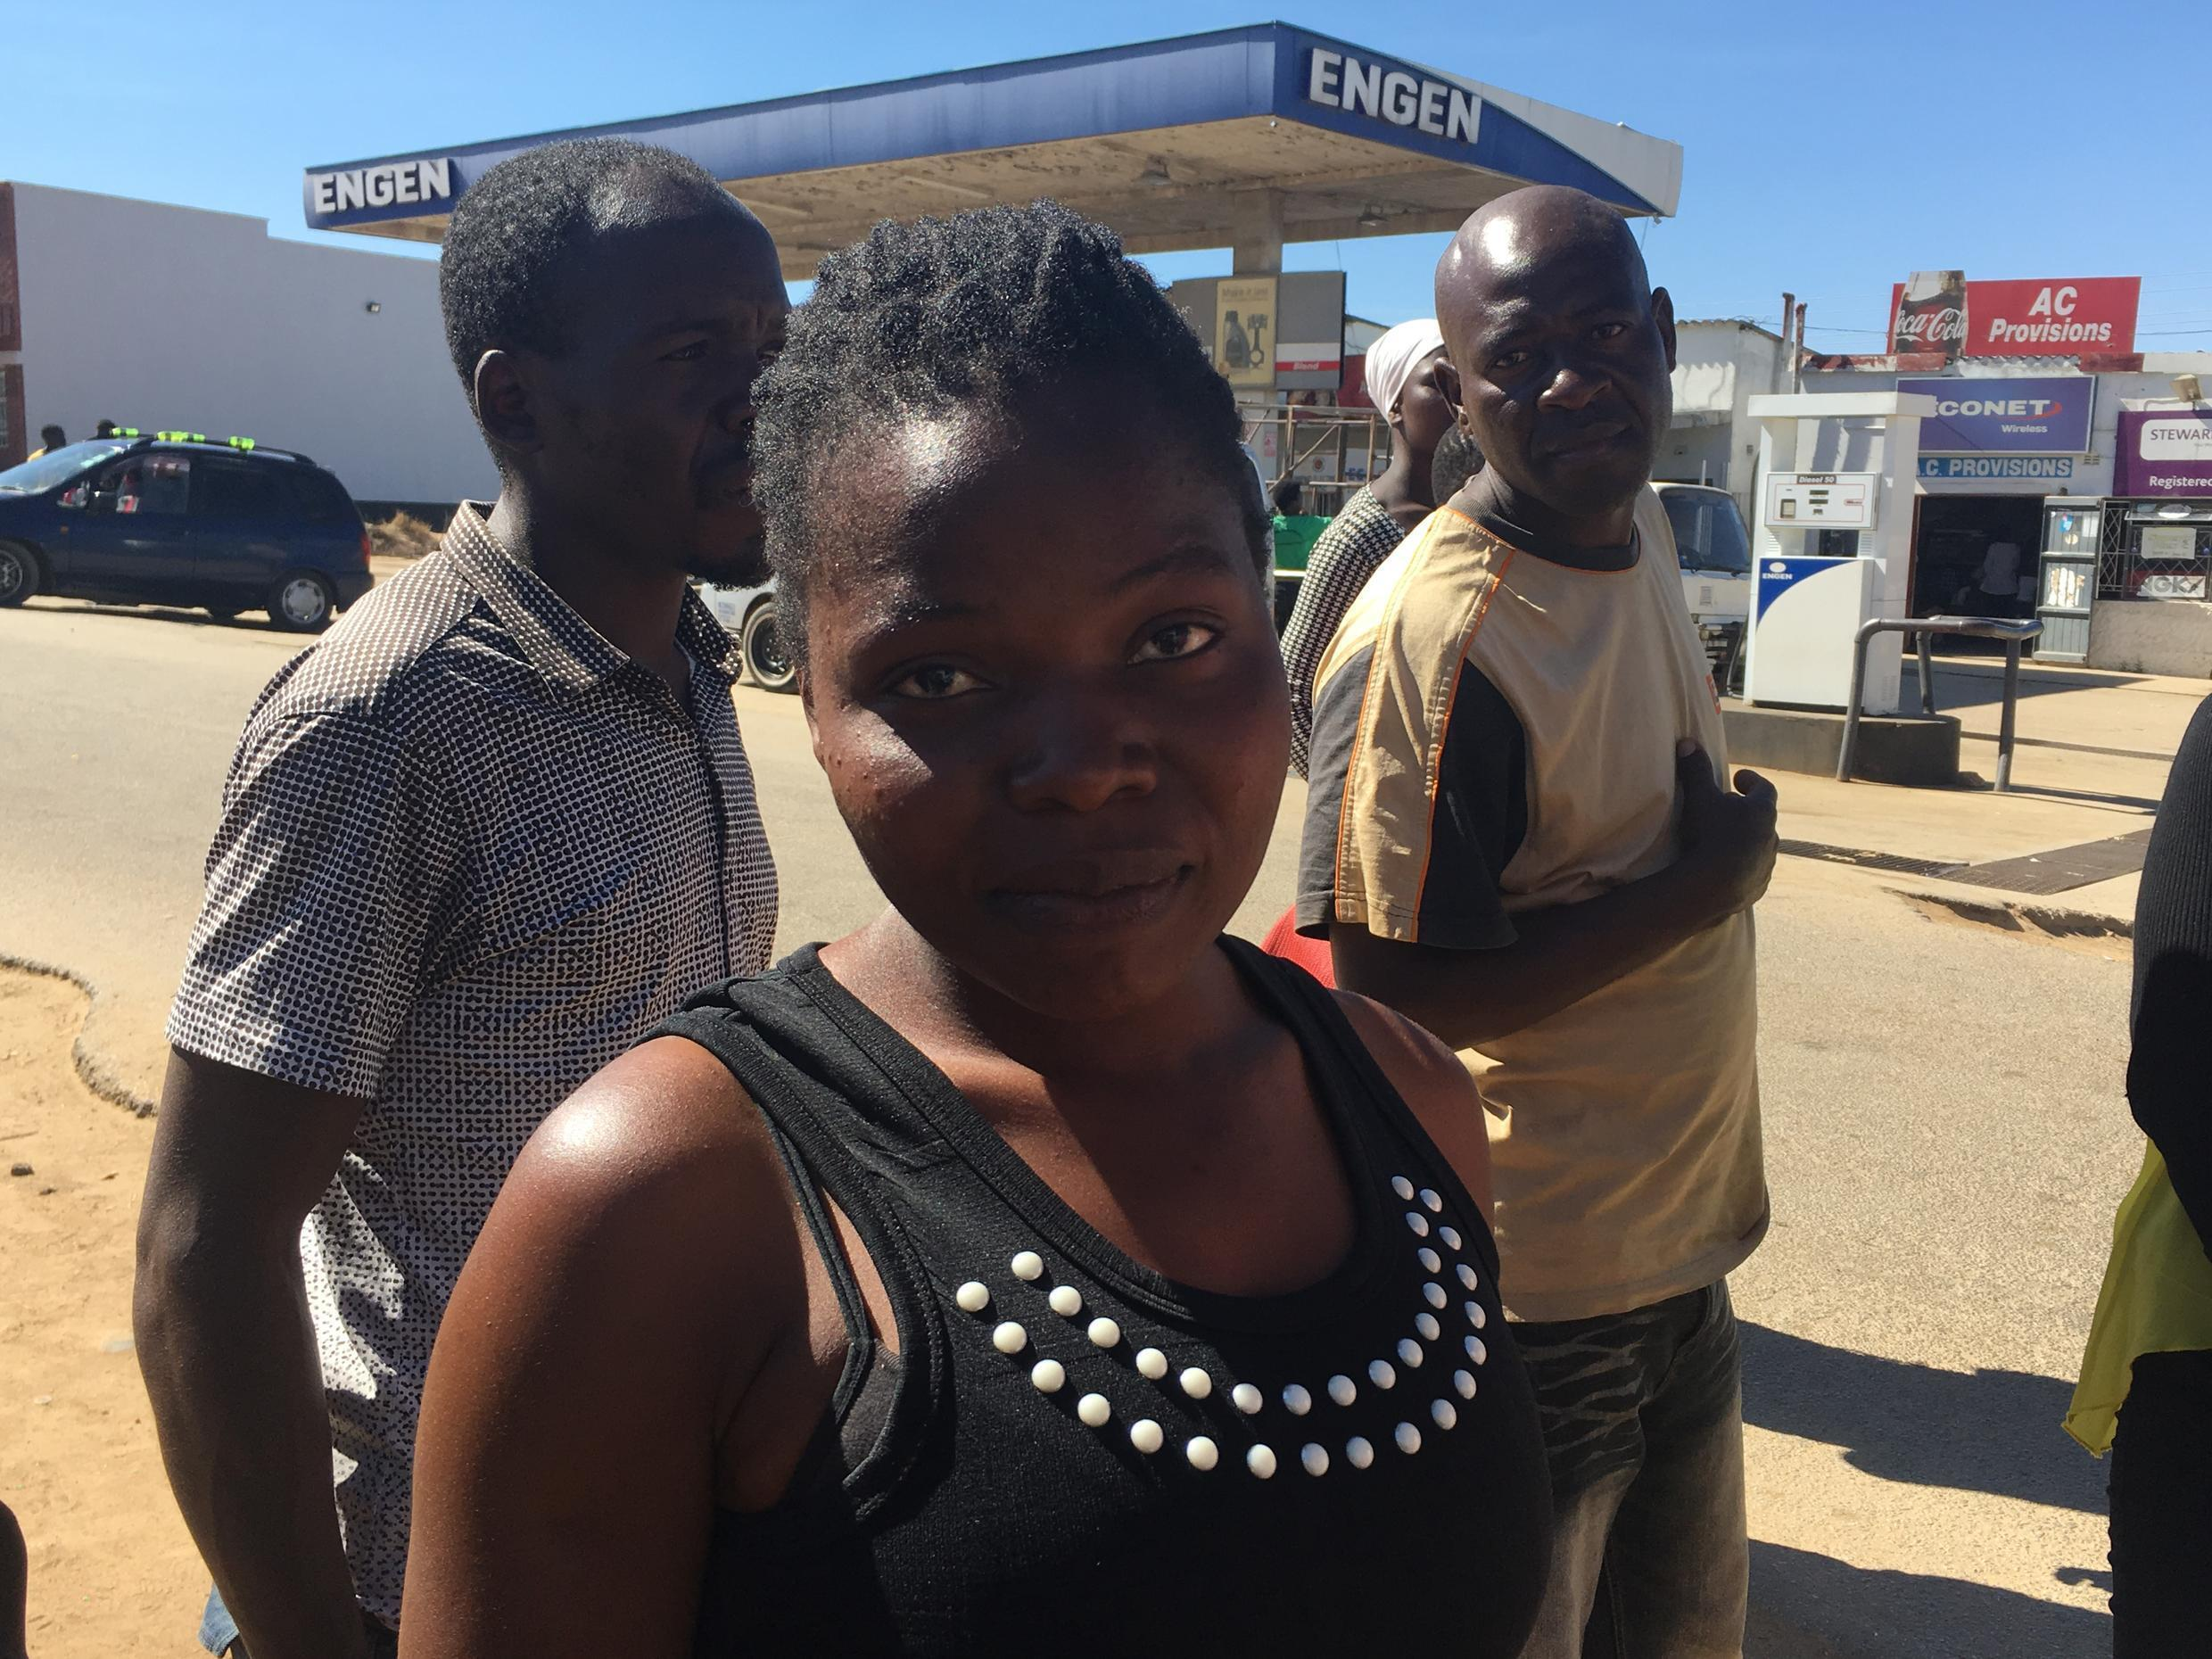 MoBlessed Momberare from Buhera village in Manicaland Province says she's voting because she wants a better economy